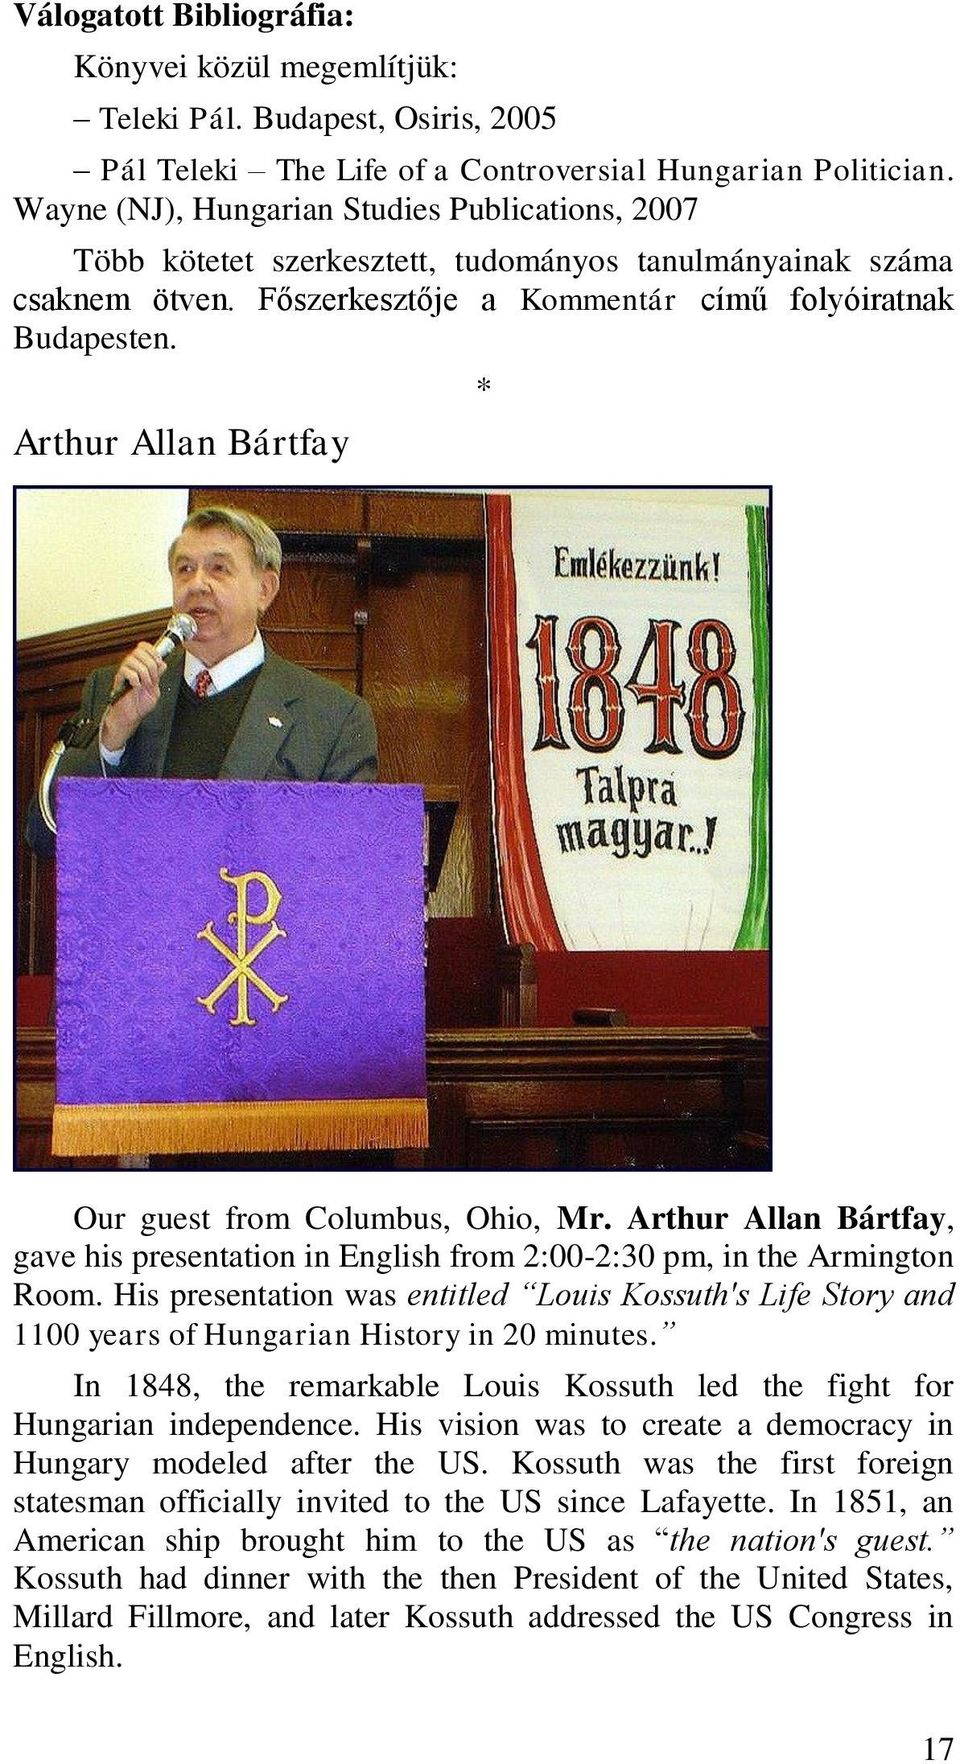 Arthur Allan Bártfay * Our guest from Columbus, Ohio, Mr. Arthur Allan Bártfay, gave his presentation in English from 2:00-2:30 pm, in the Armington Room.